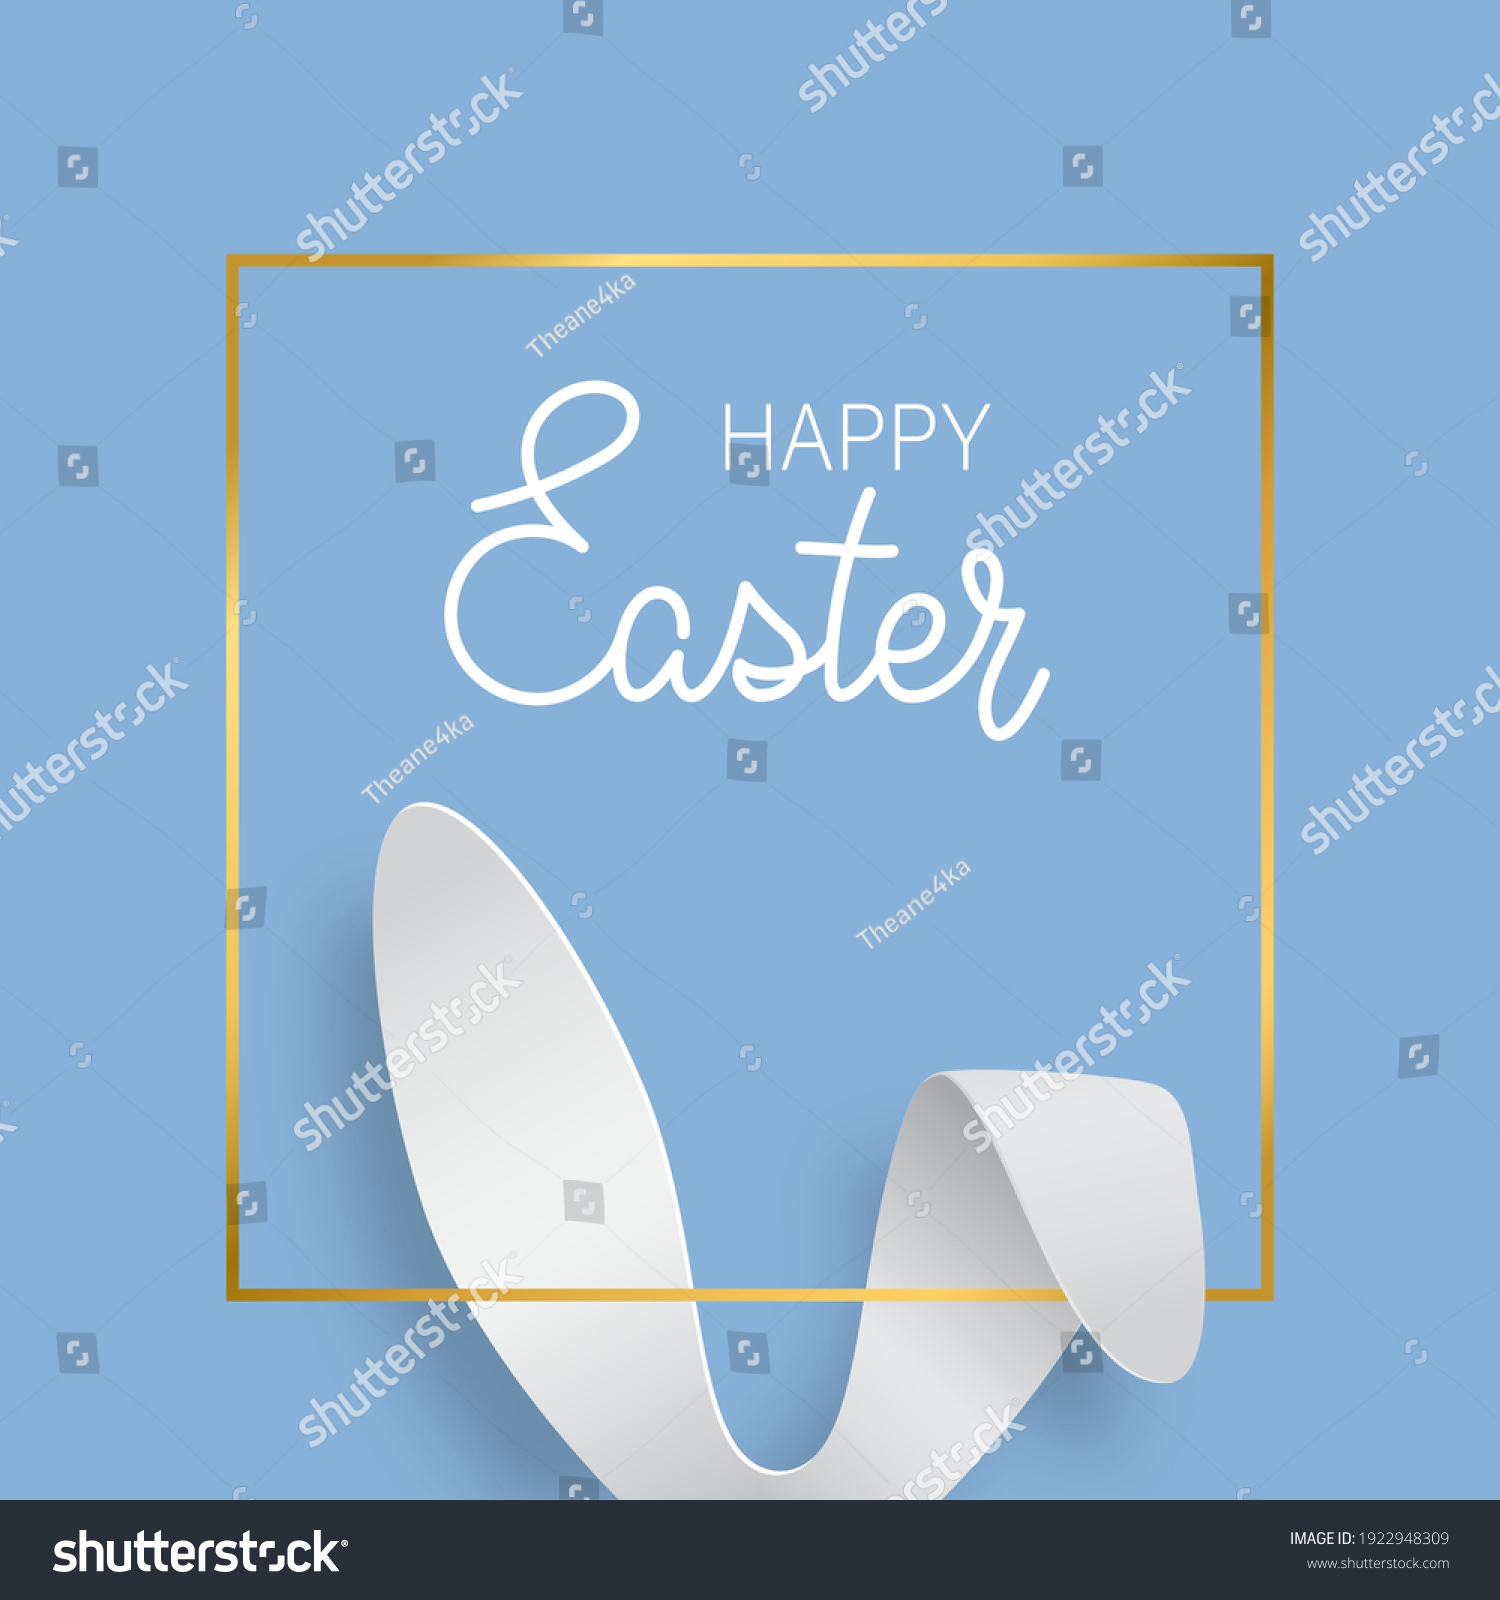 Easter greeting card with bunny ears and gold texture frame. Vector 3d abstract paper cut illustration. Copy space for text. Easter rabbit with lettering Happy Easter on blue background. #1922948309